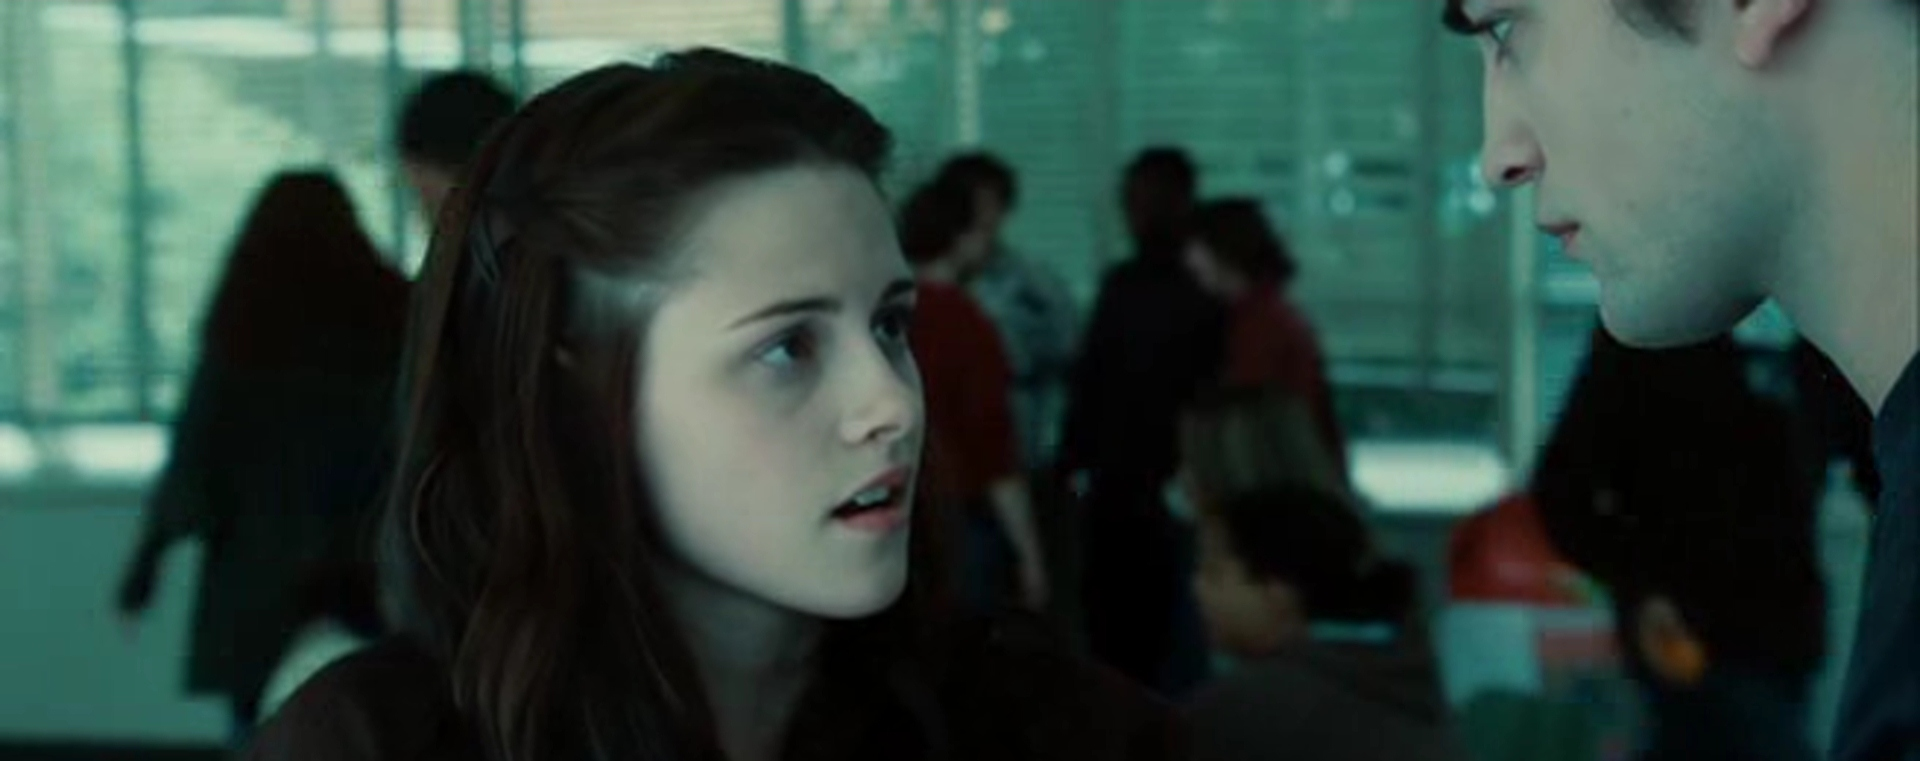 Bella y rencontre edward